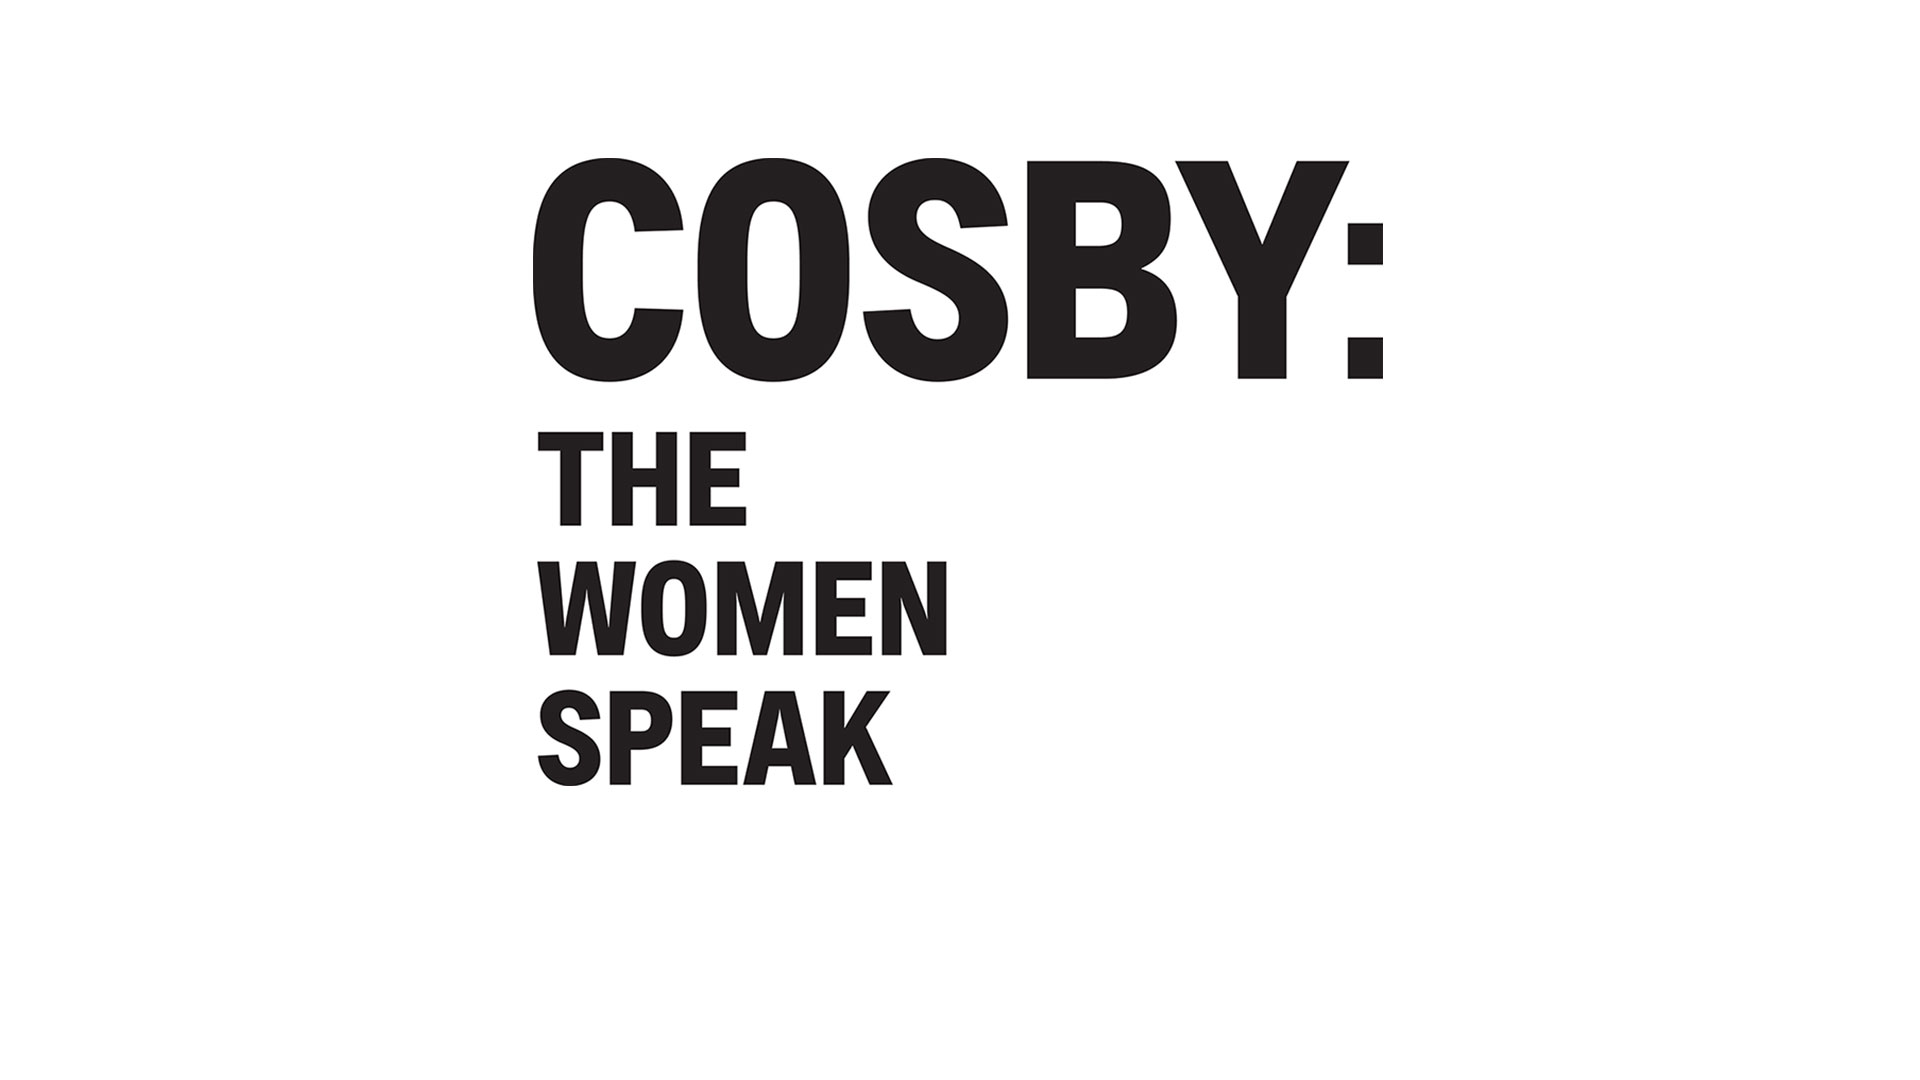 Cosby The Women Speak Full Episodes Video Amp More